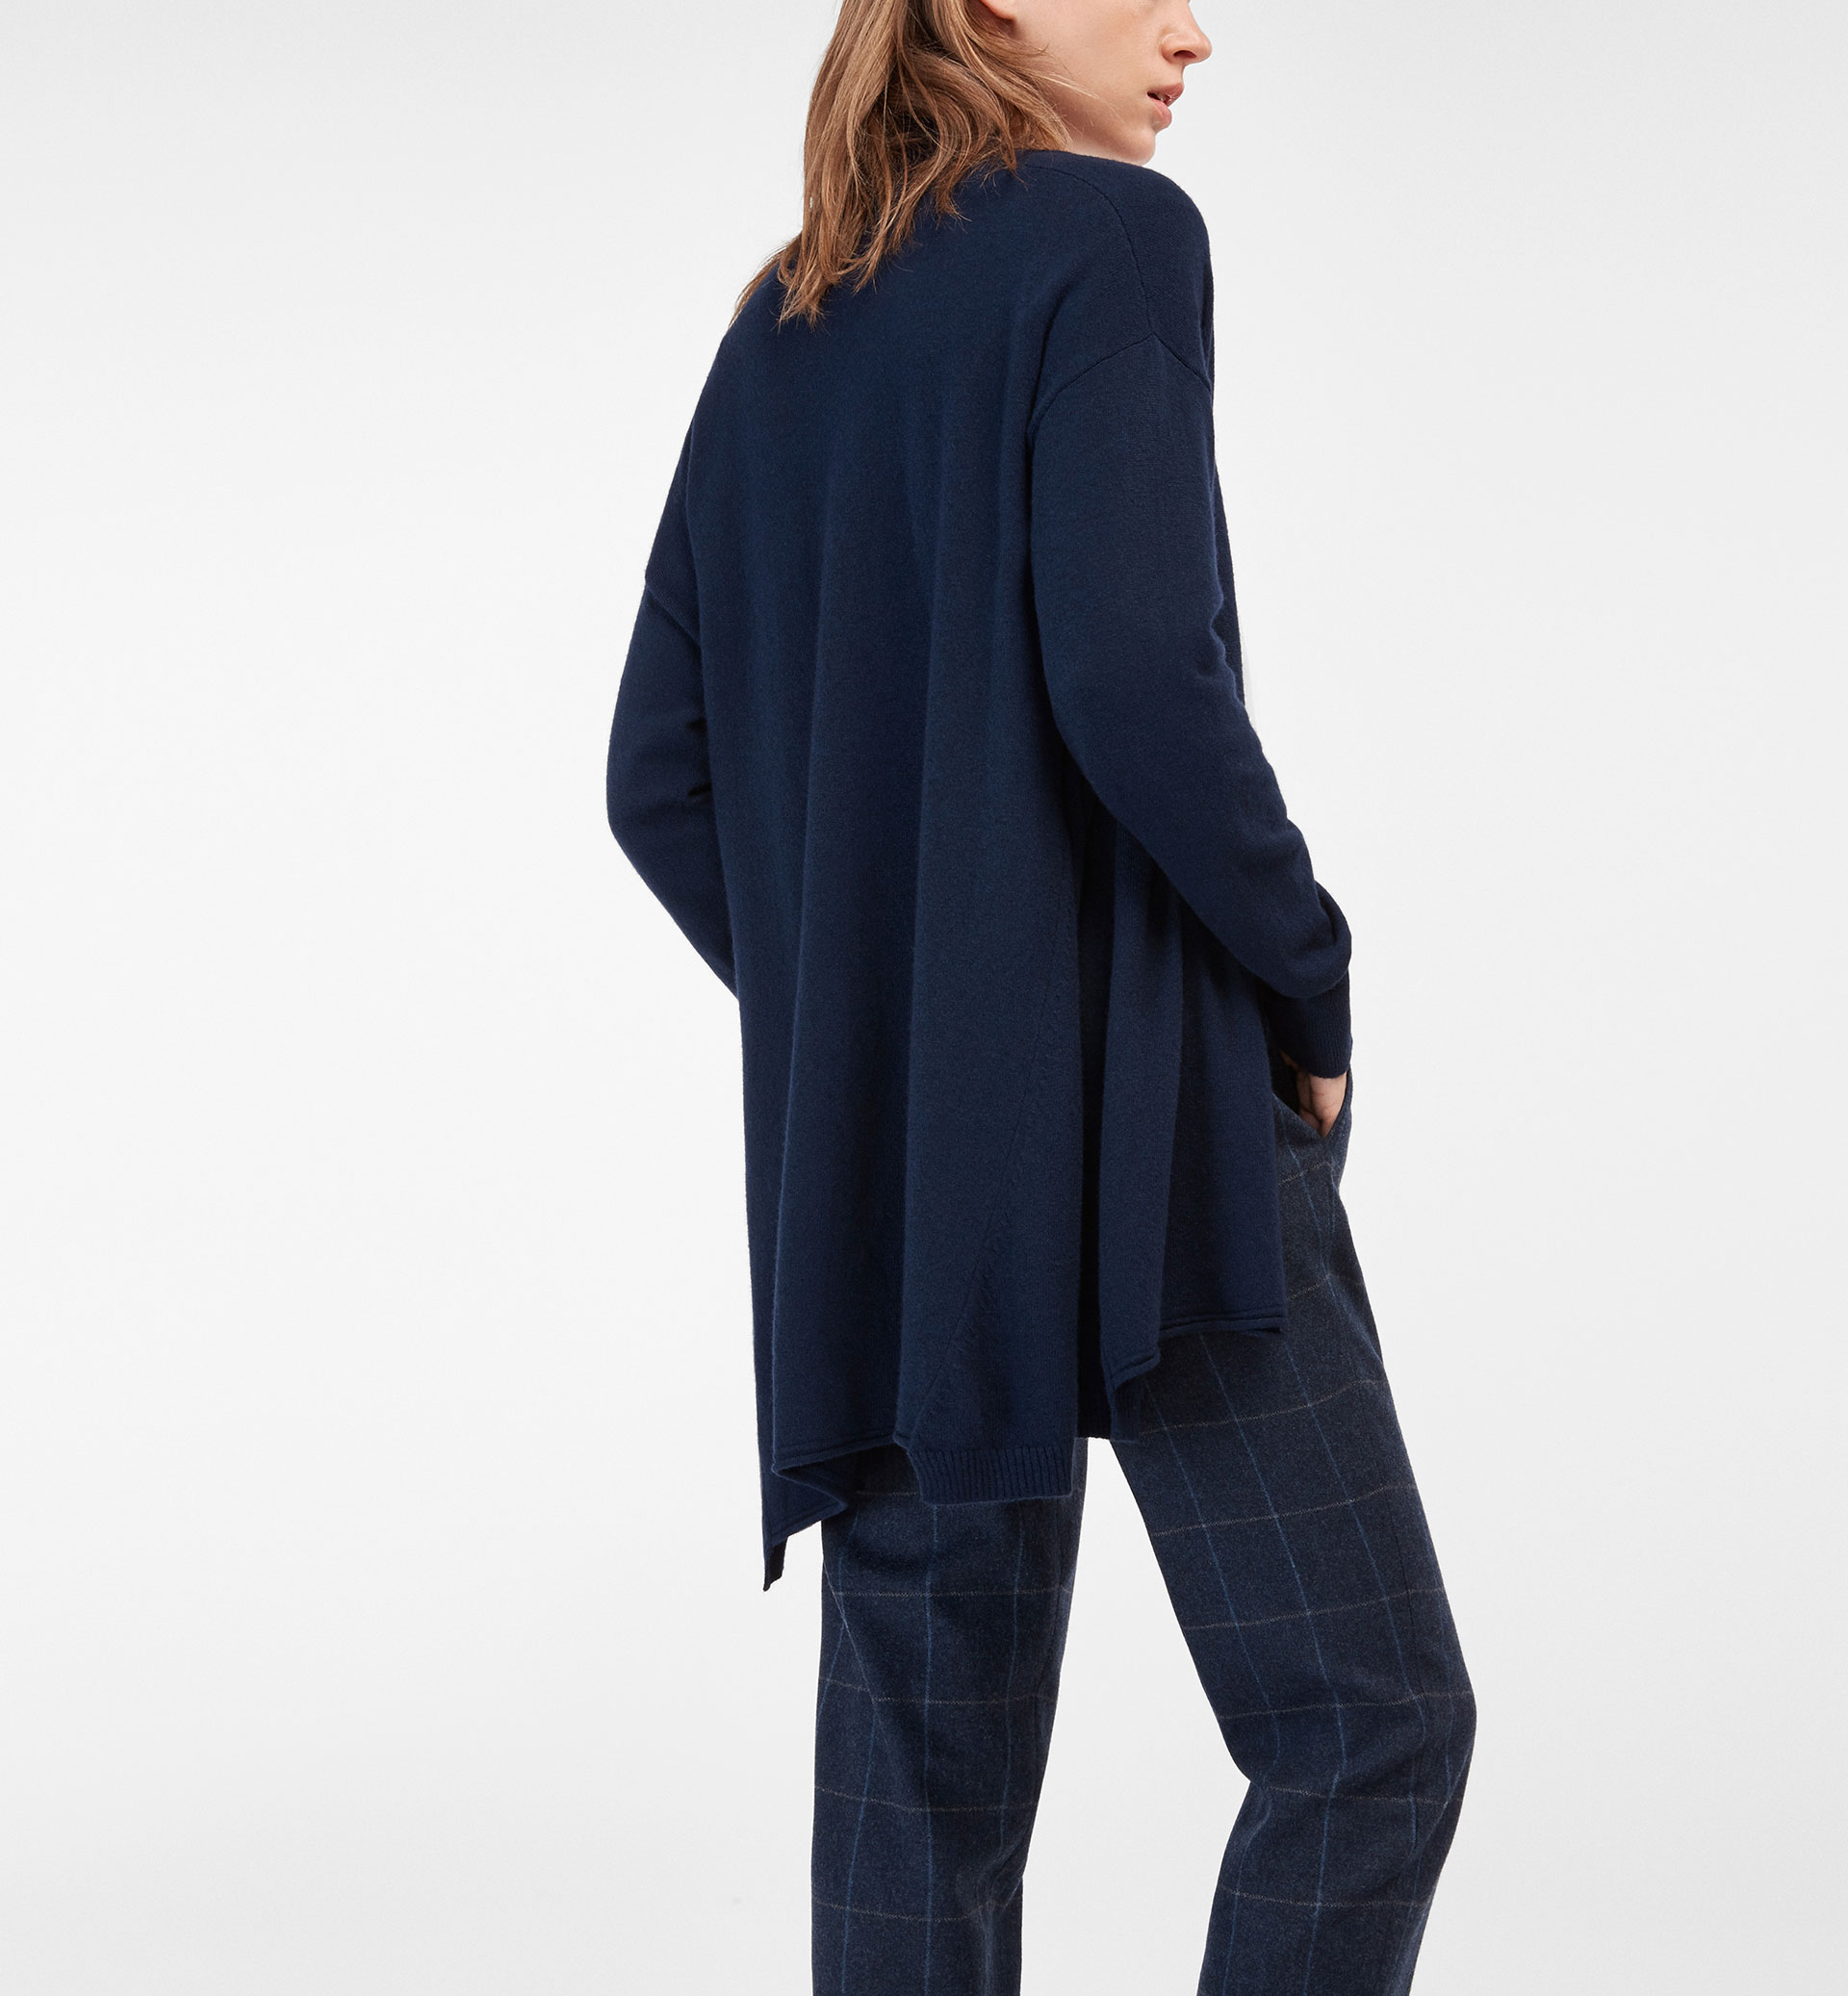 BASIC CARDIGAN WITH A DRAPED DETAIL